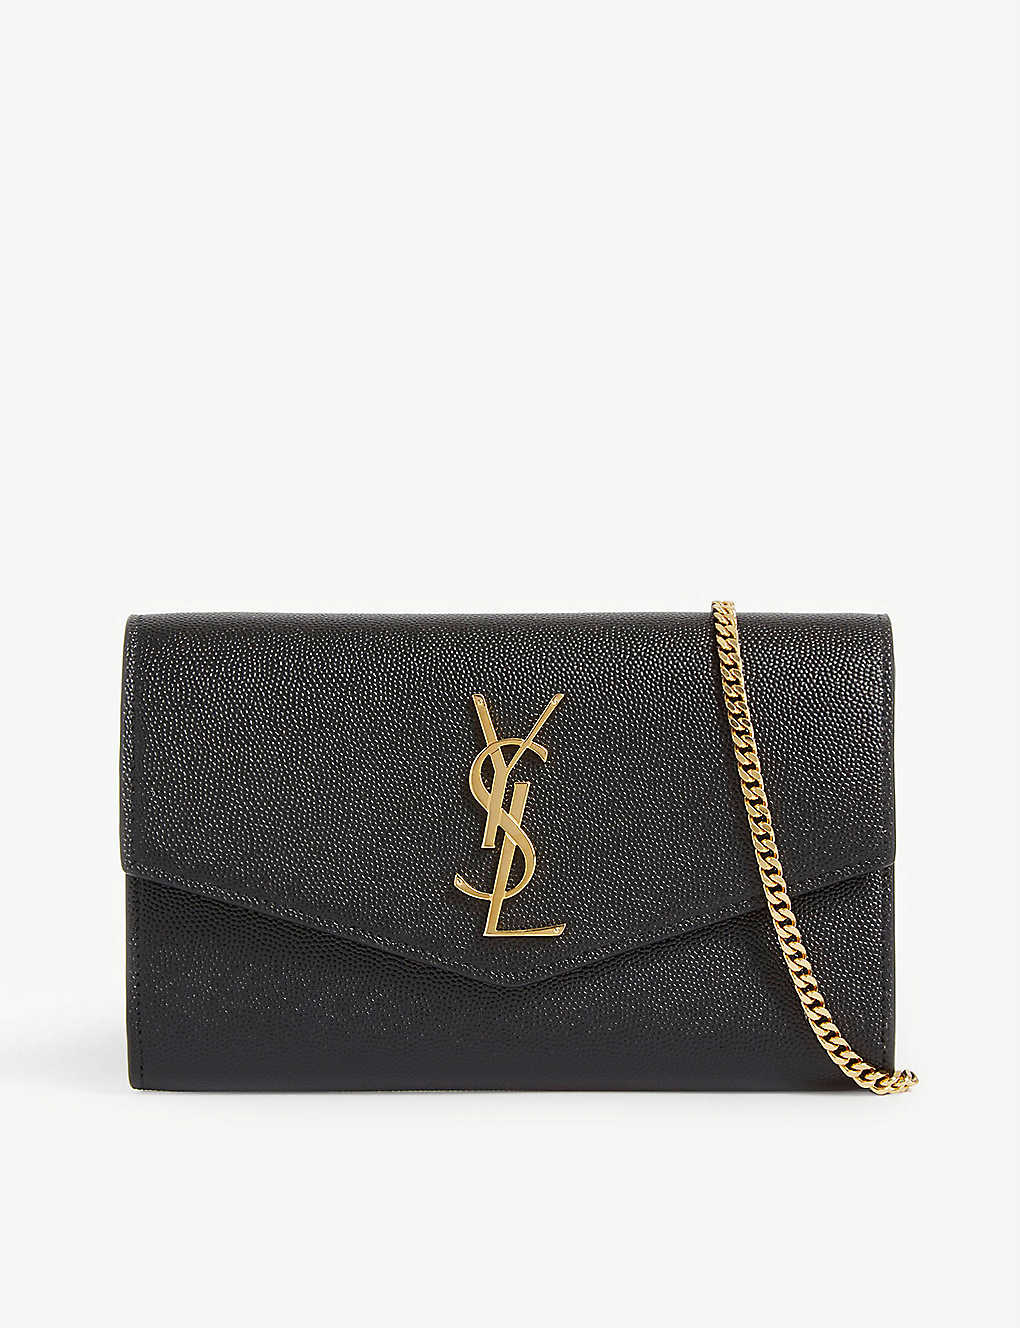 SAINT LAURENT: Uptown leather cross-body bag